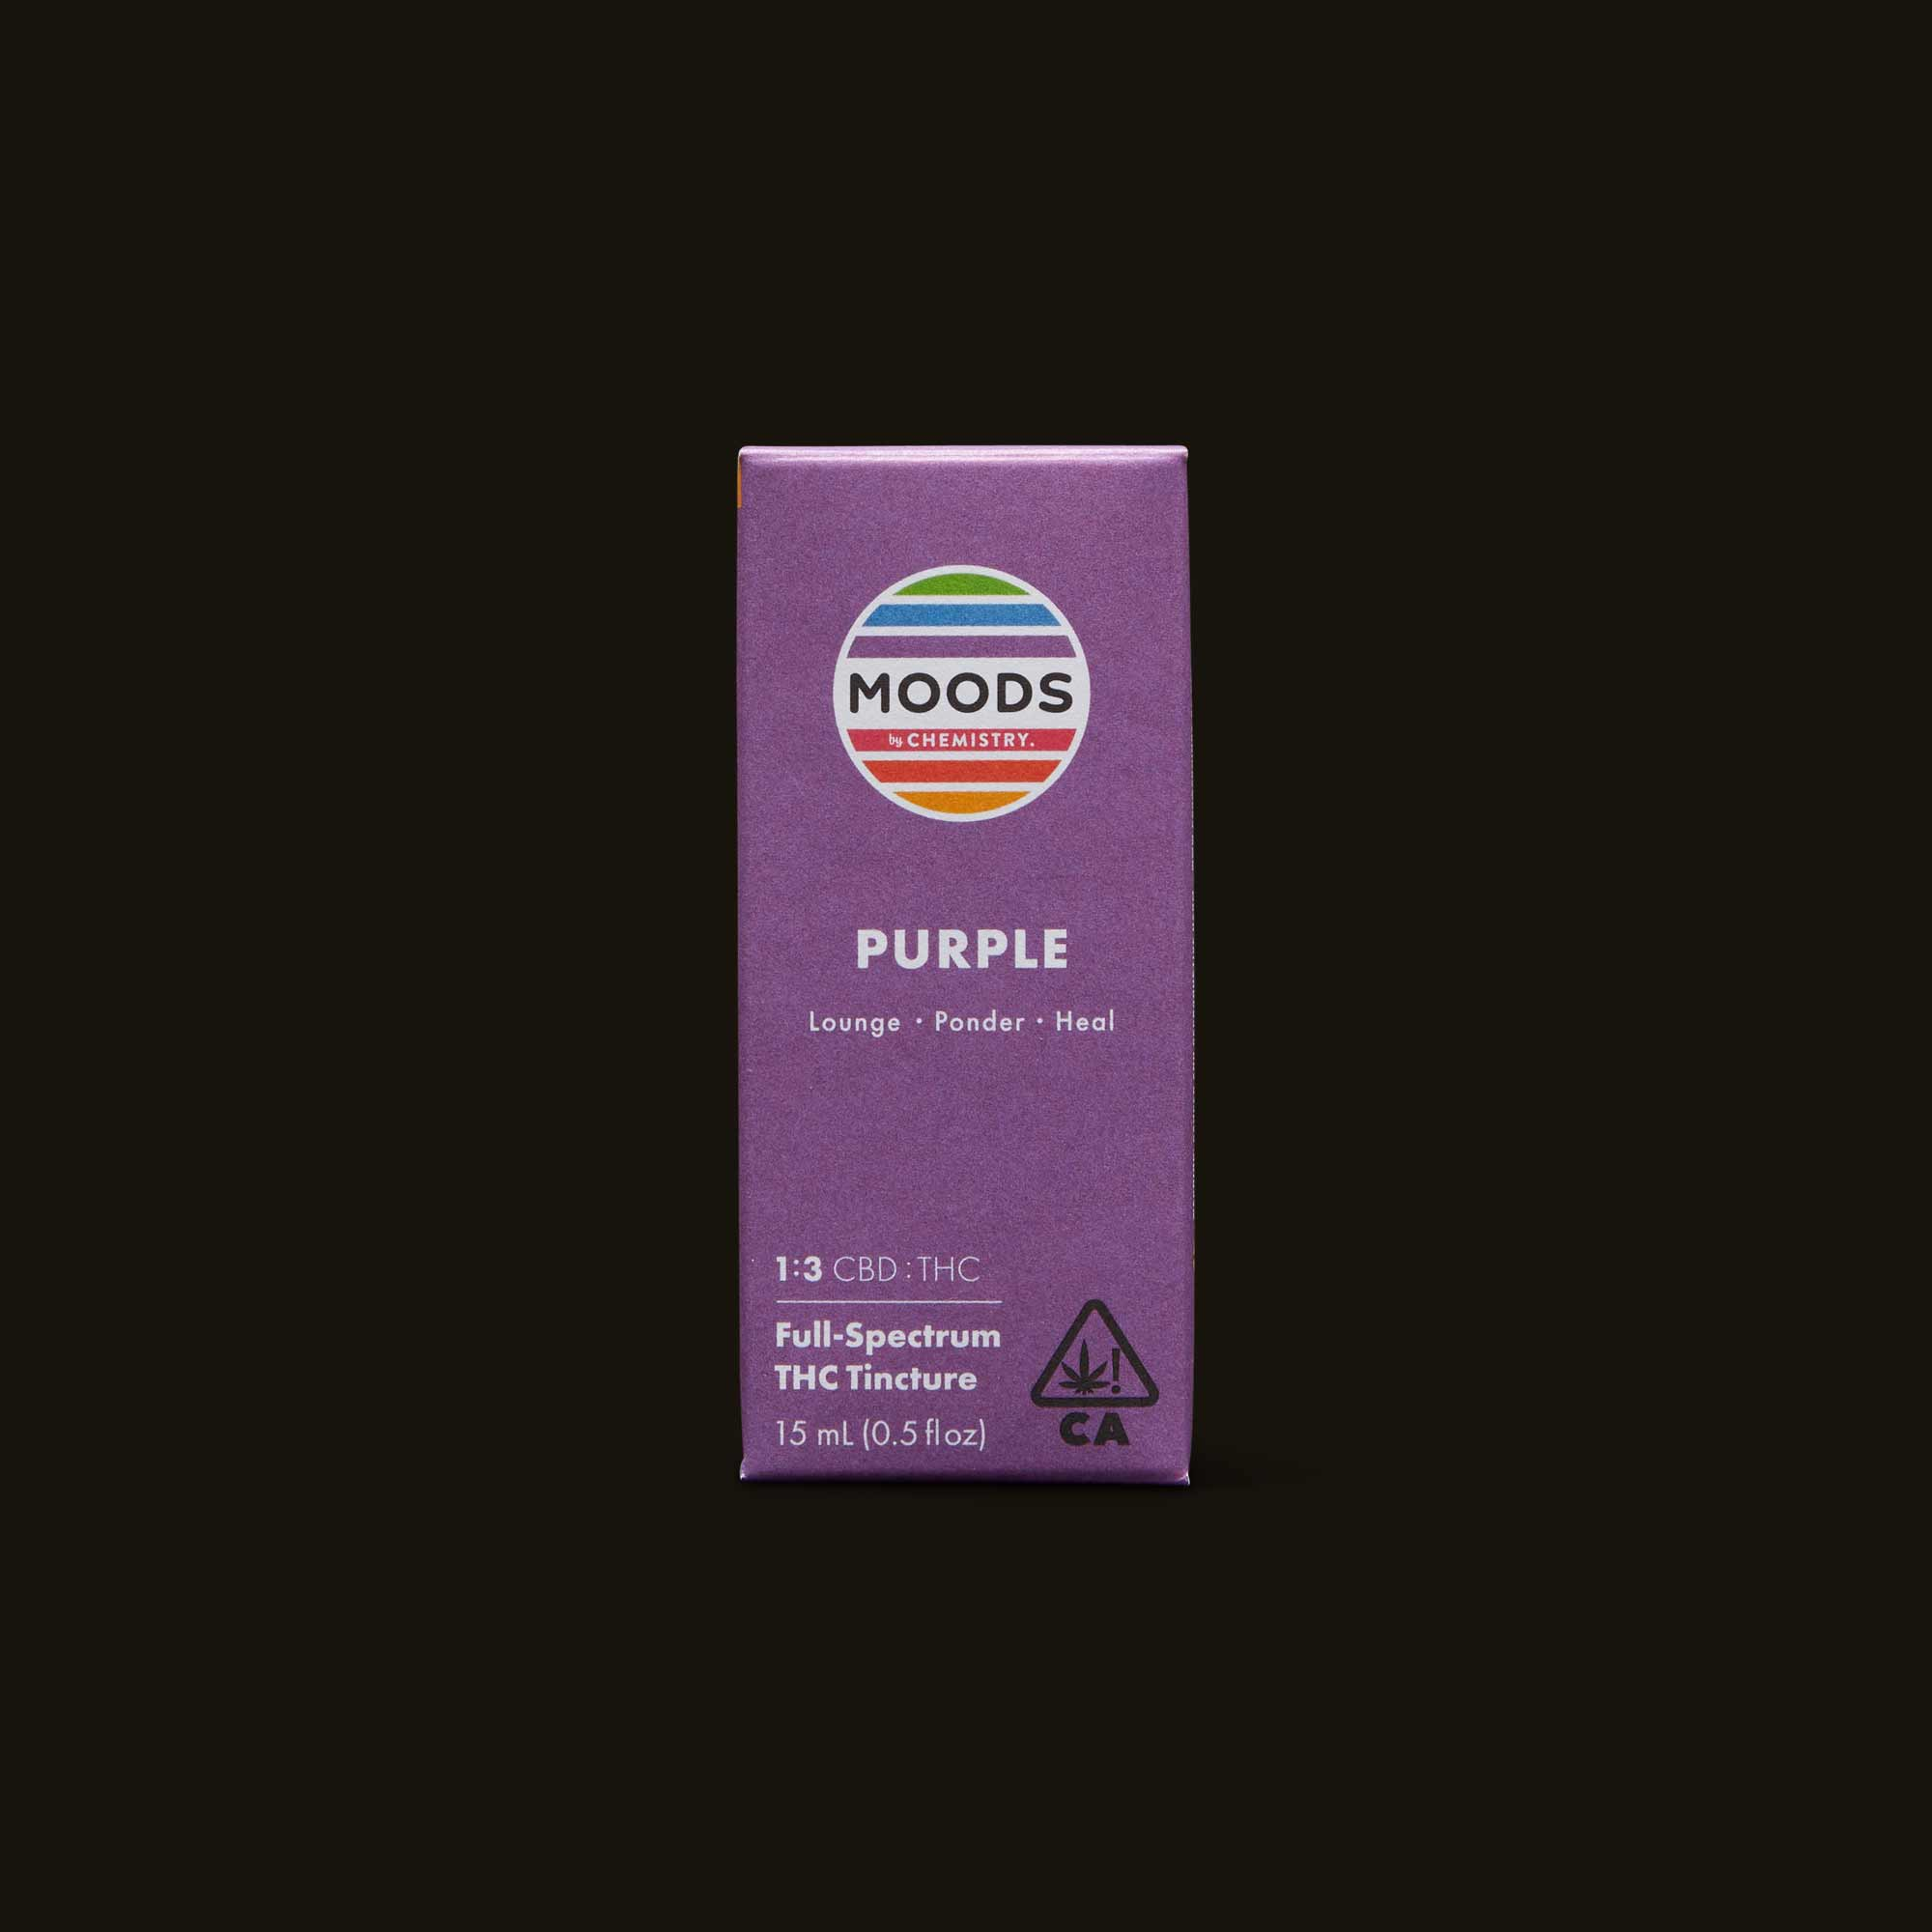 Package of Purple Moods